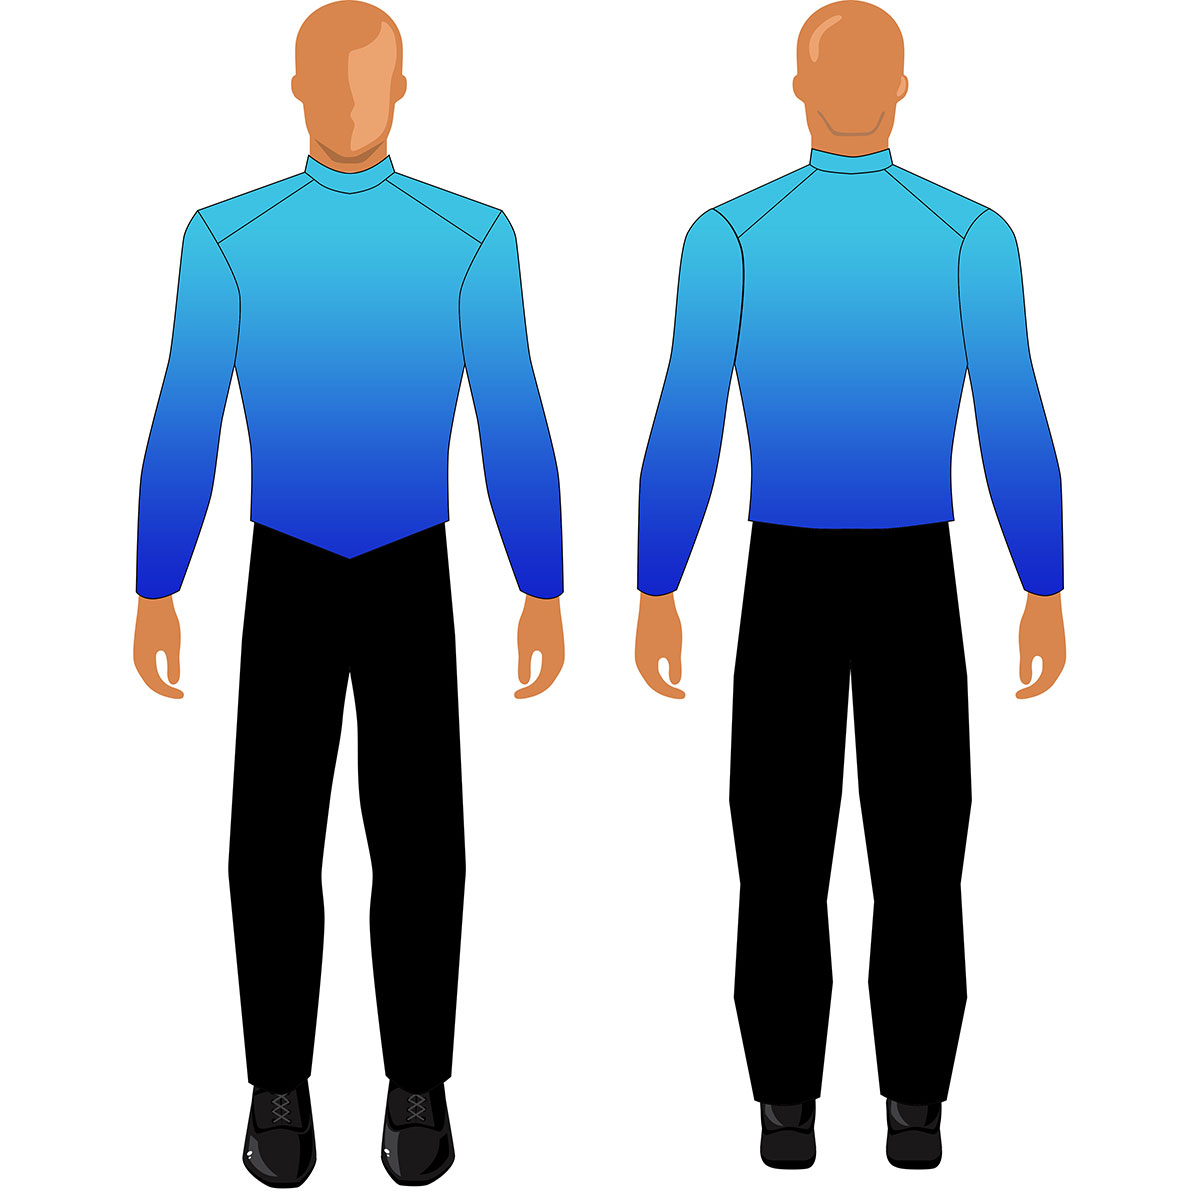 Digital Band Uniforms: Gradient (Jacket)